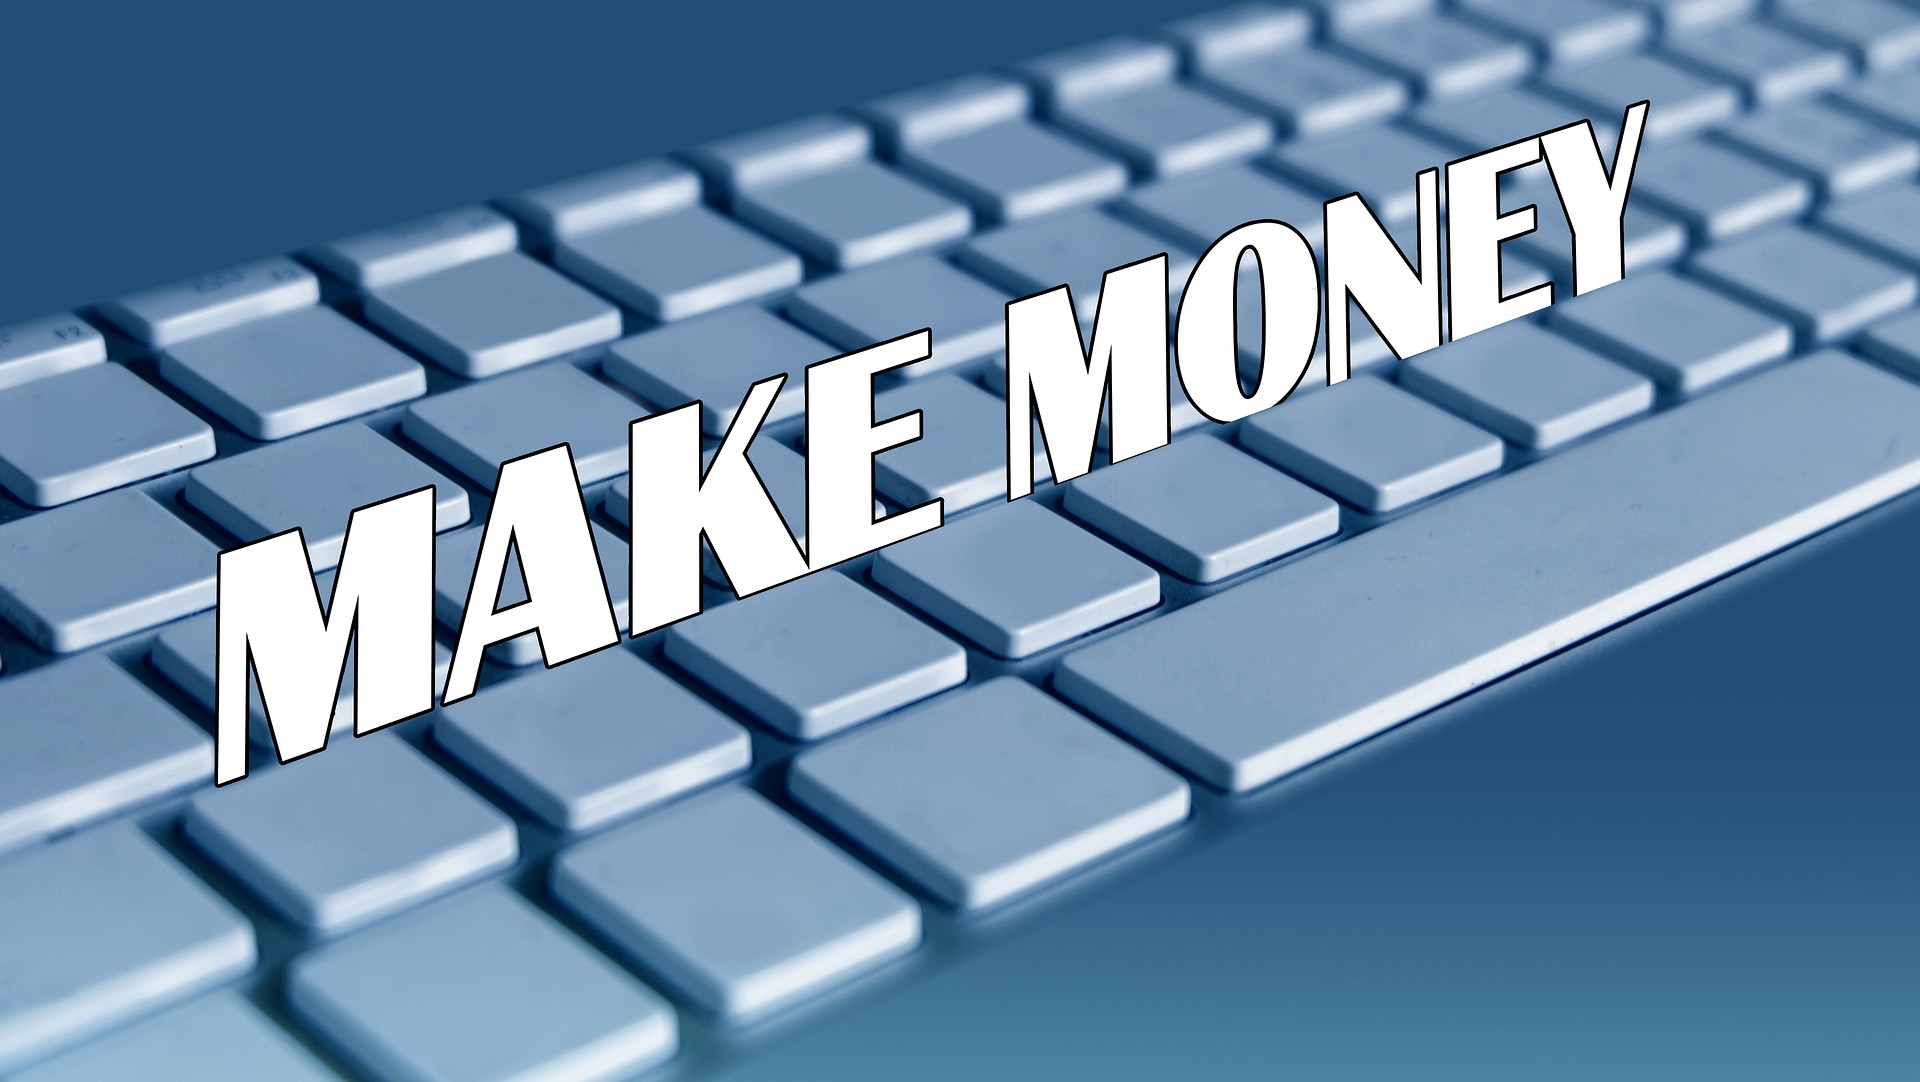 Make Money Computer Keyboard Image